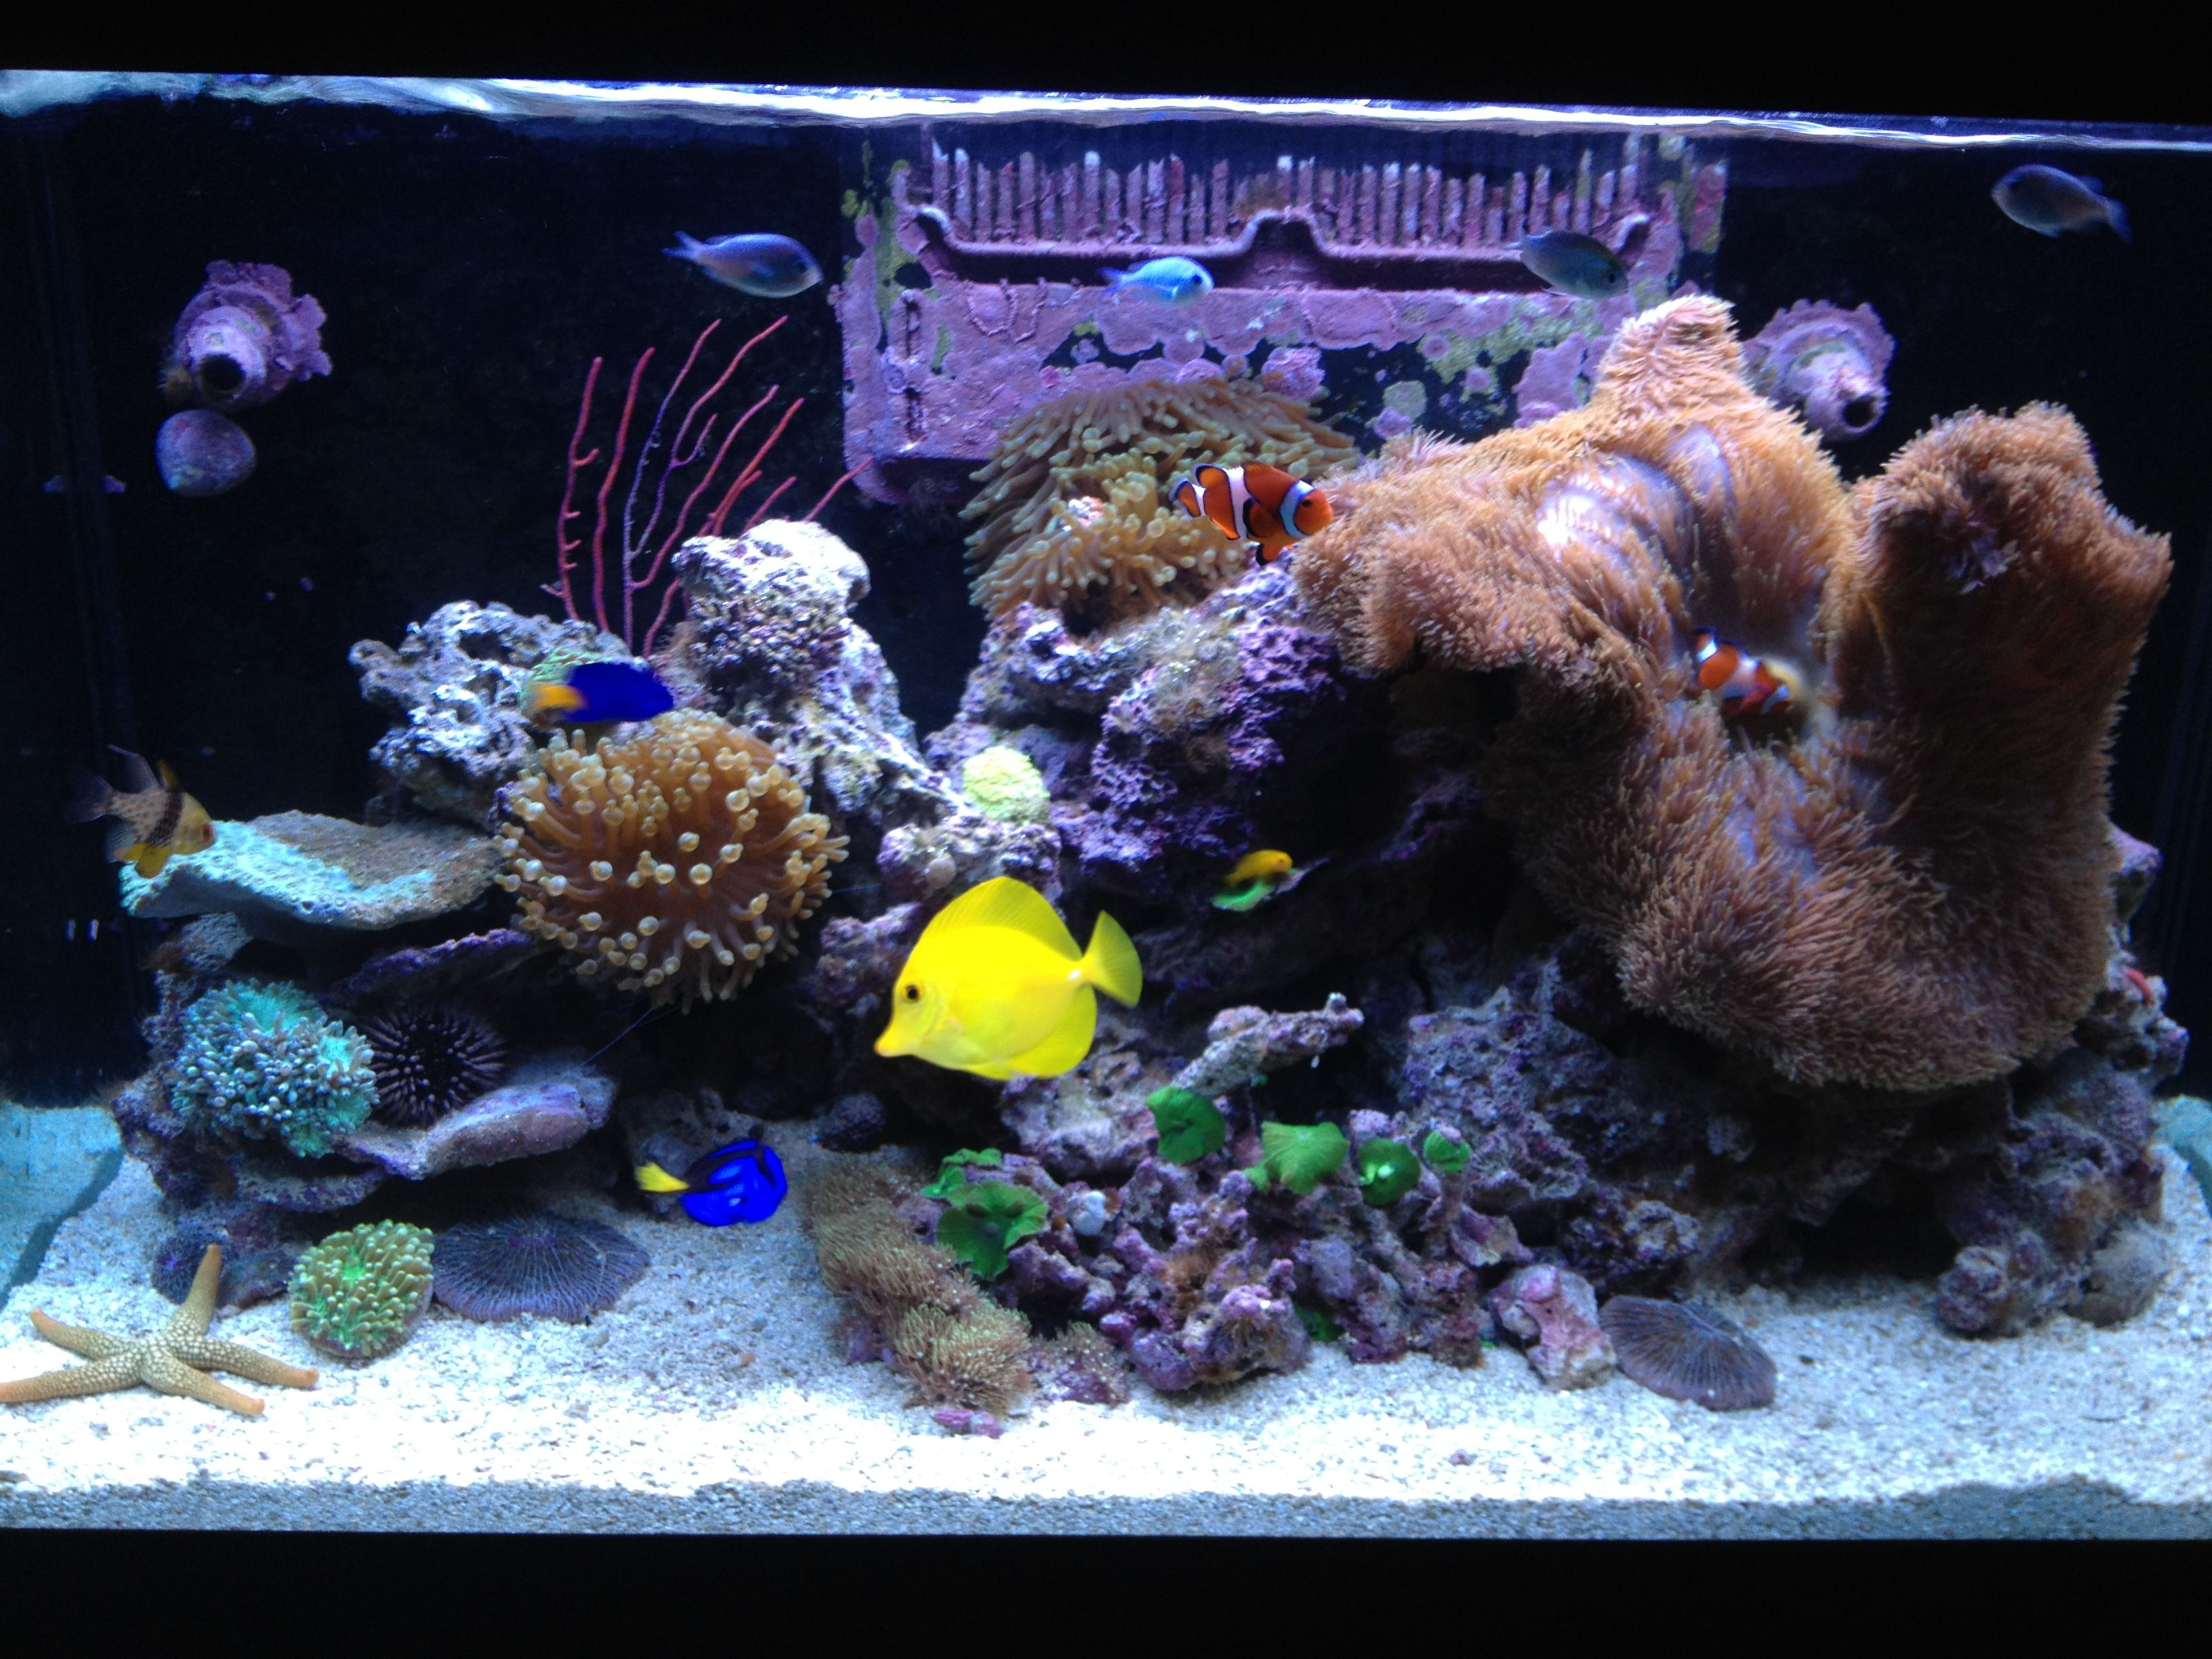 New website launched for saltwater aquarium hobbyists